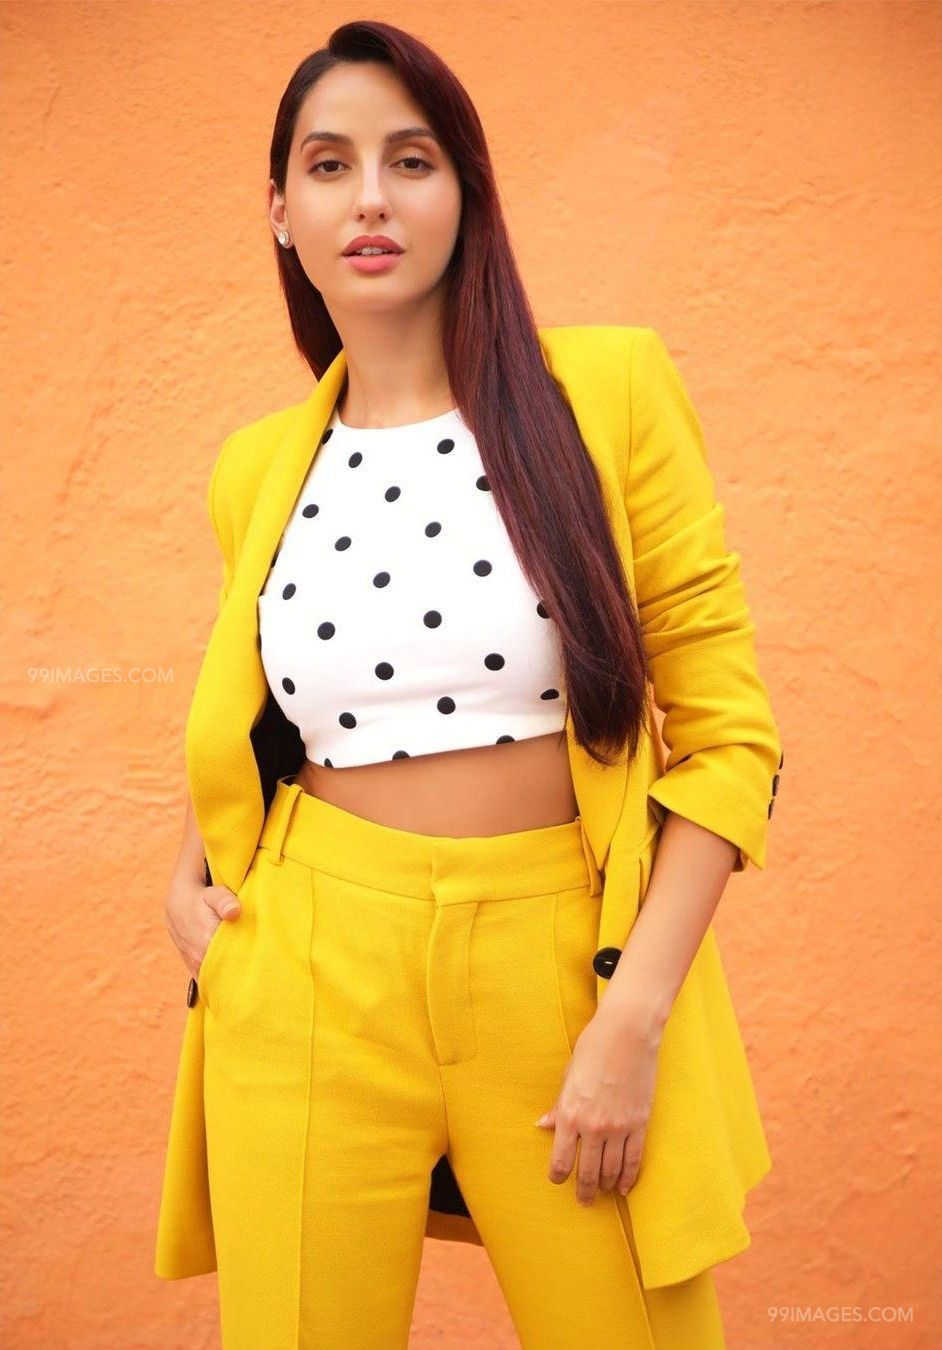 Nora Fatehi Latest Hot HD Photos & Mobile Wallpapers (1080p) (50283) - Nora Fatehi